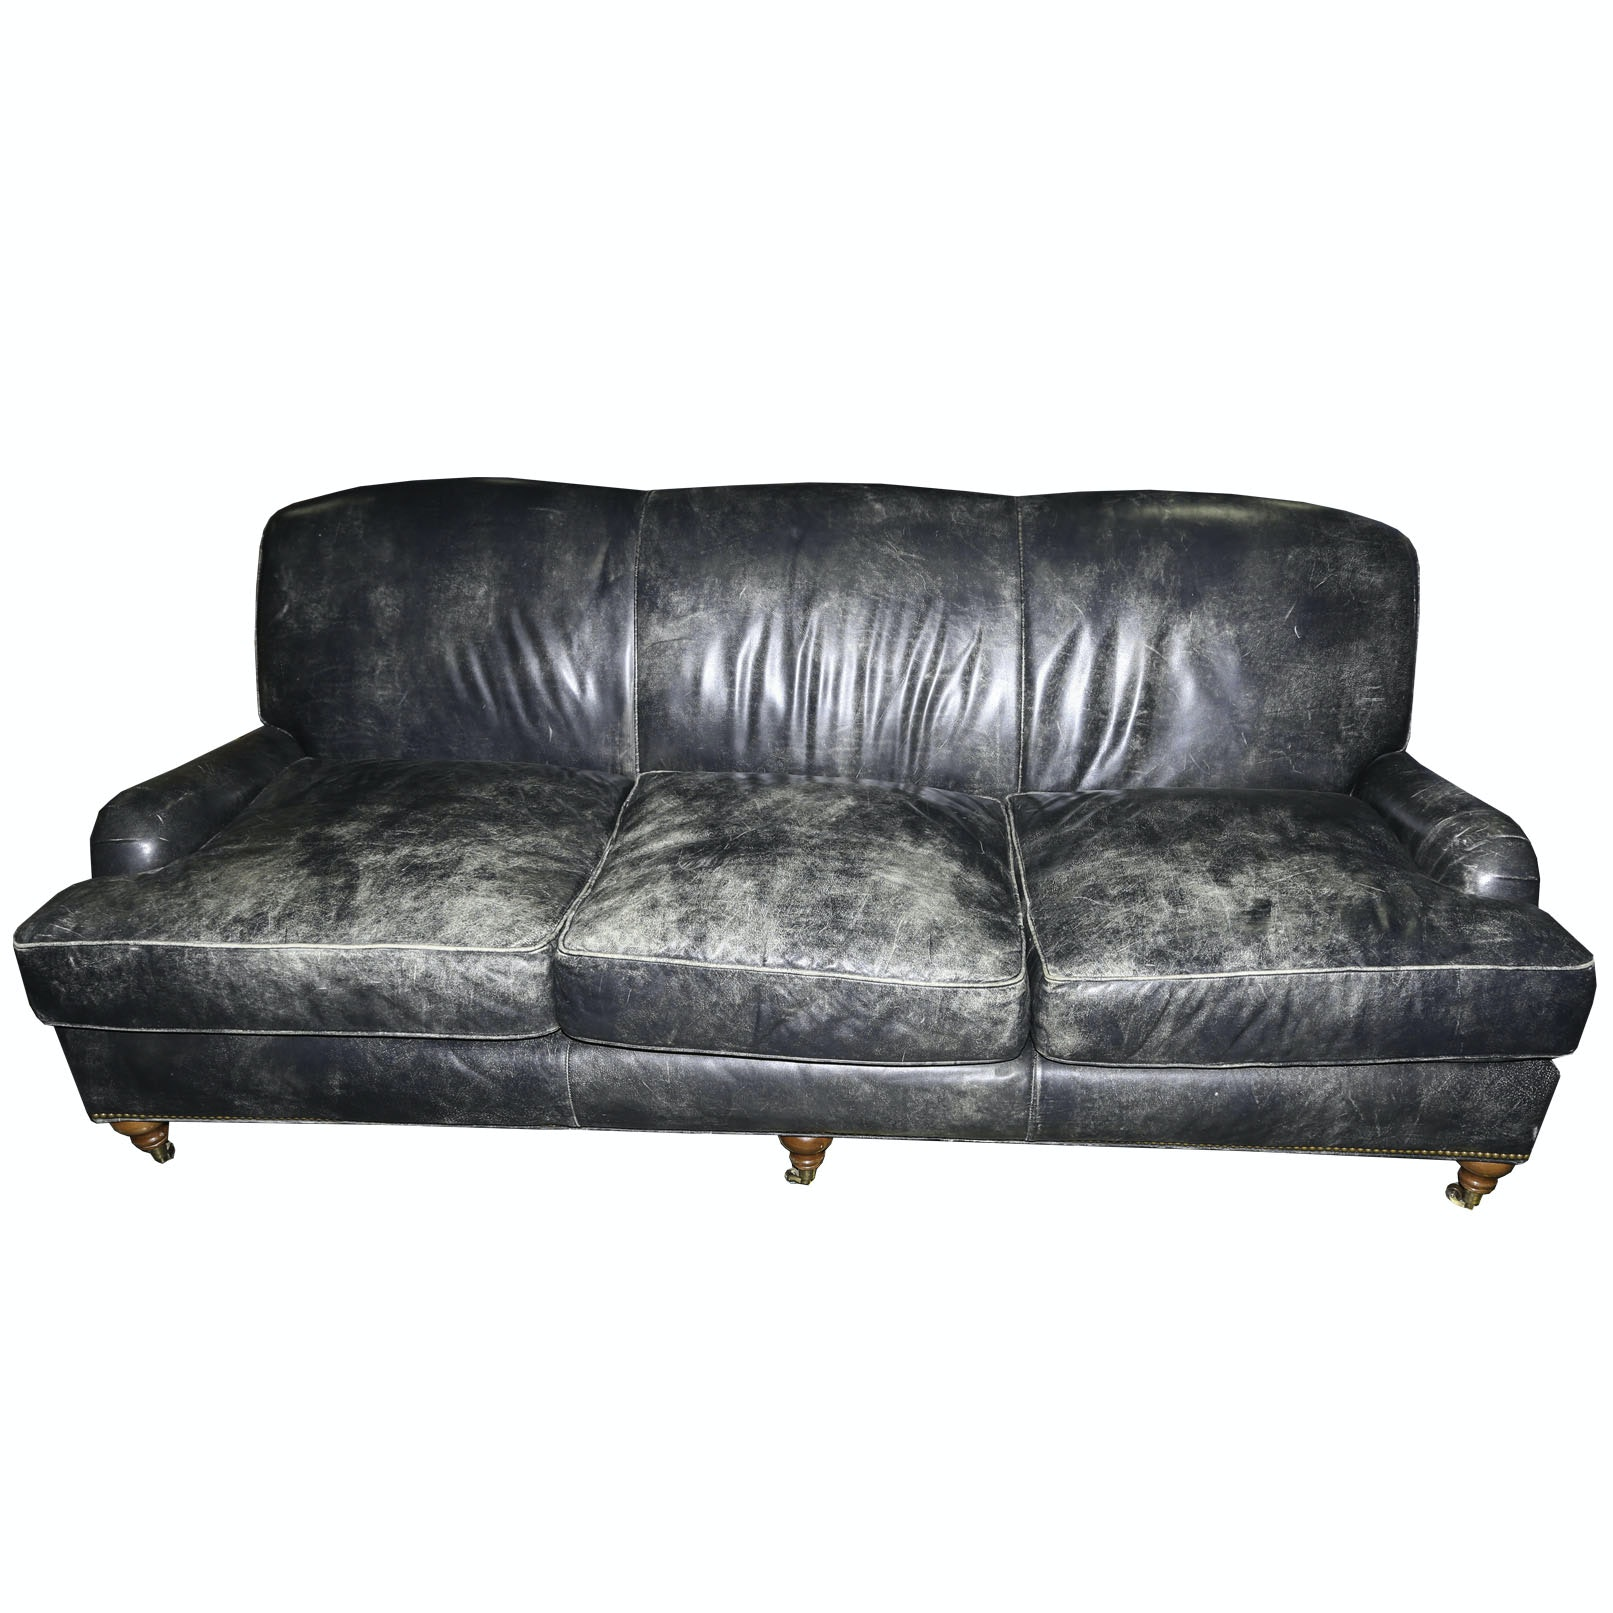 Distressed Leather Sofa by Stanford Furniture